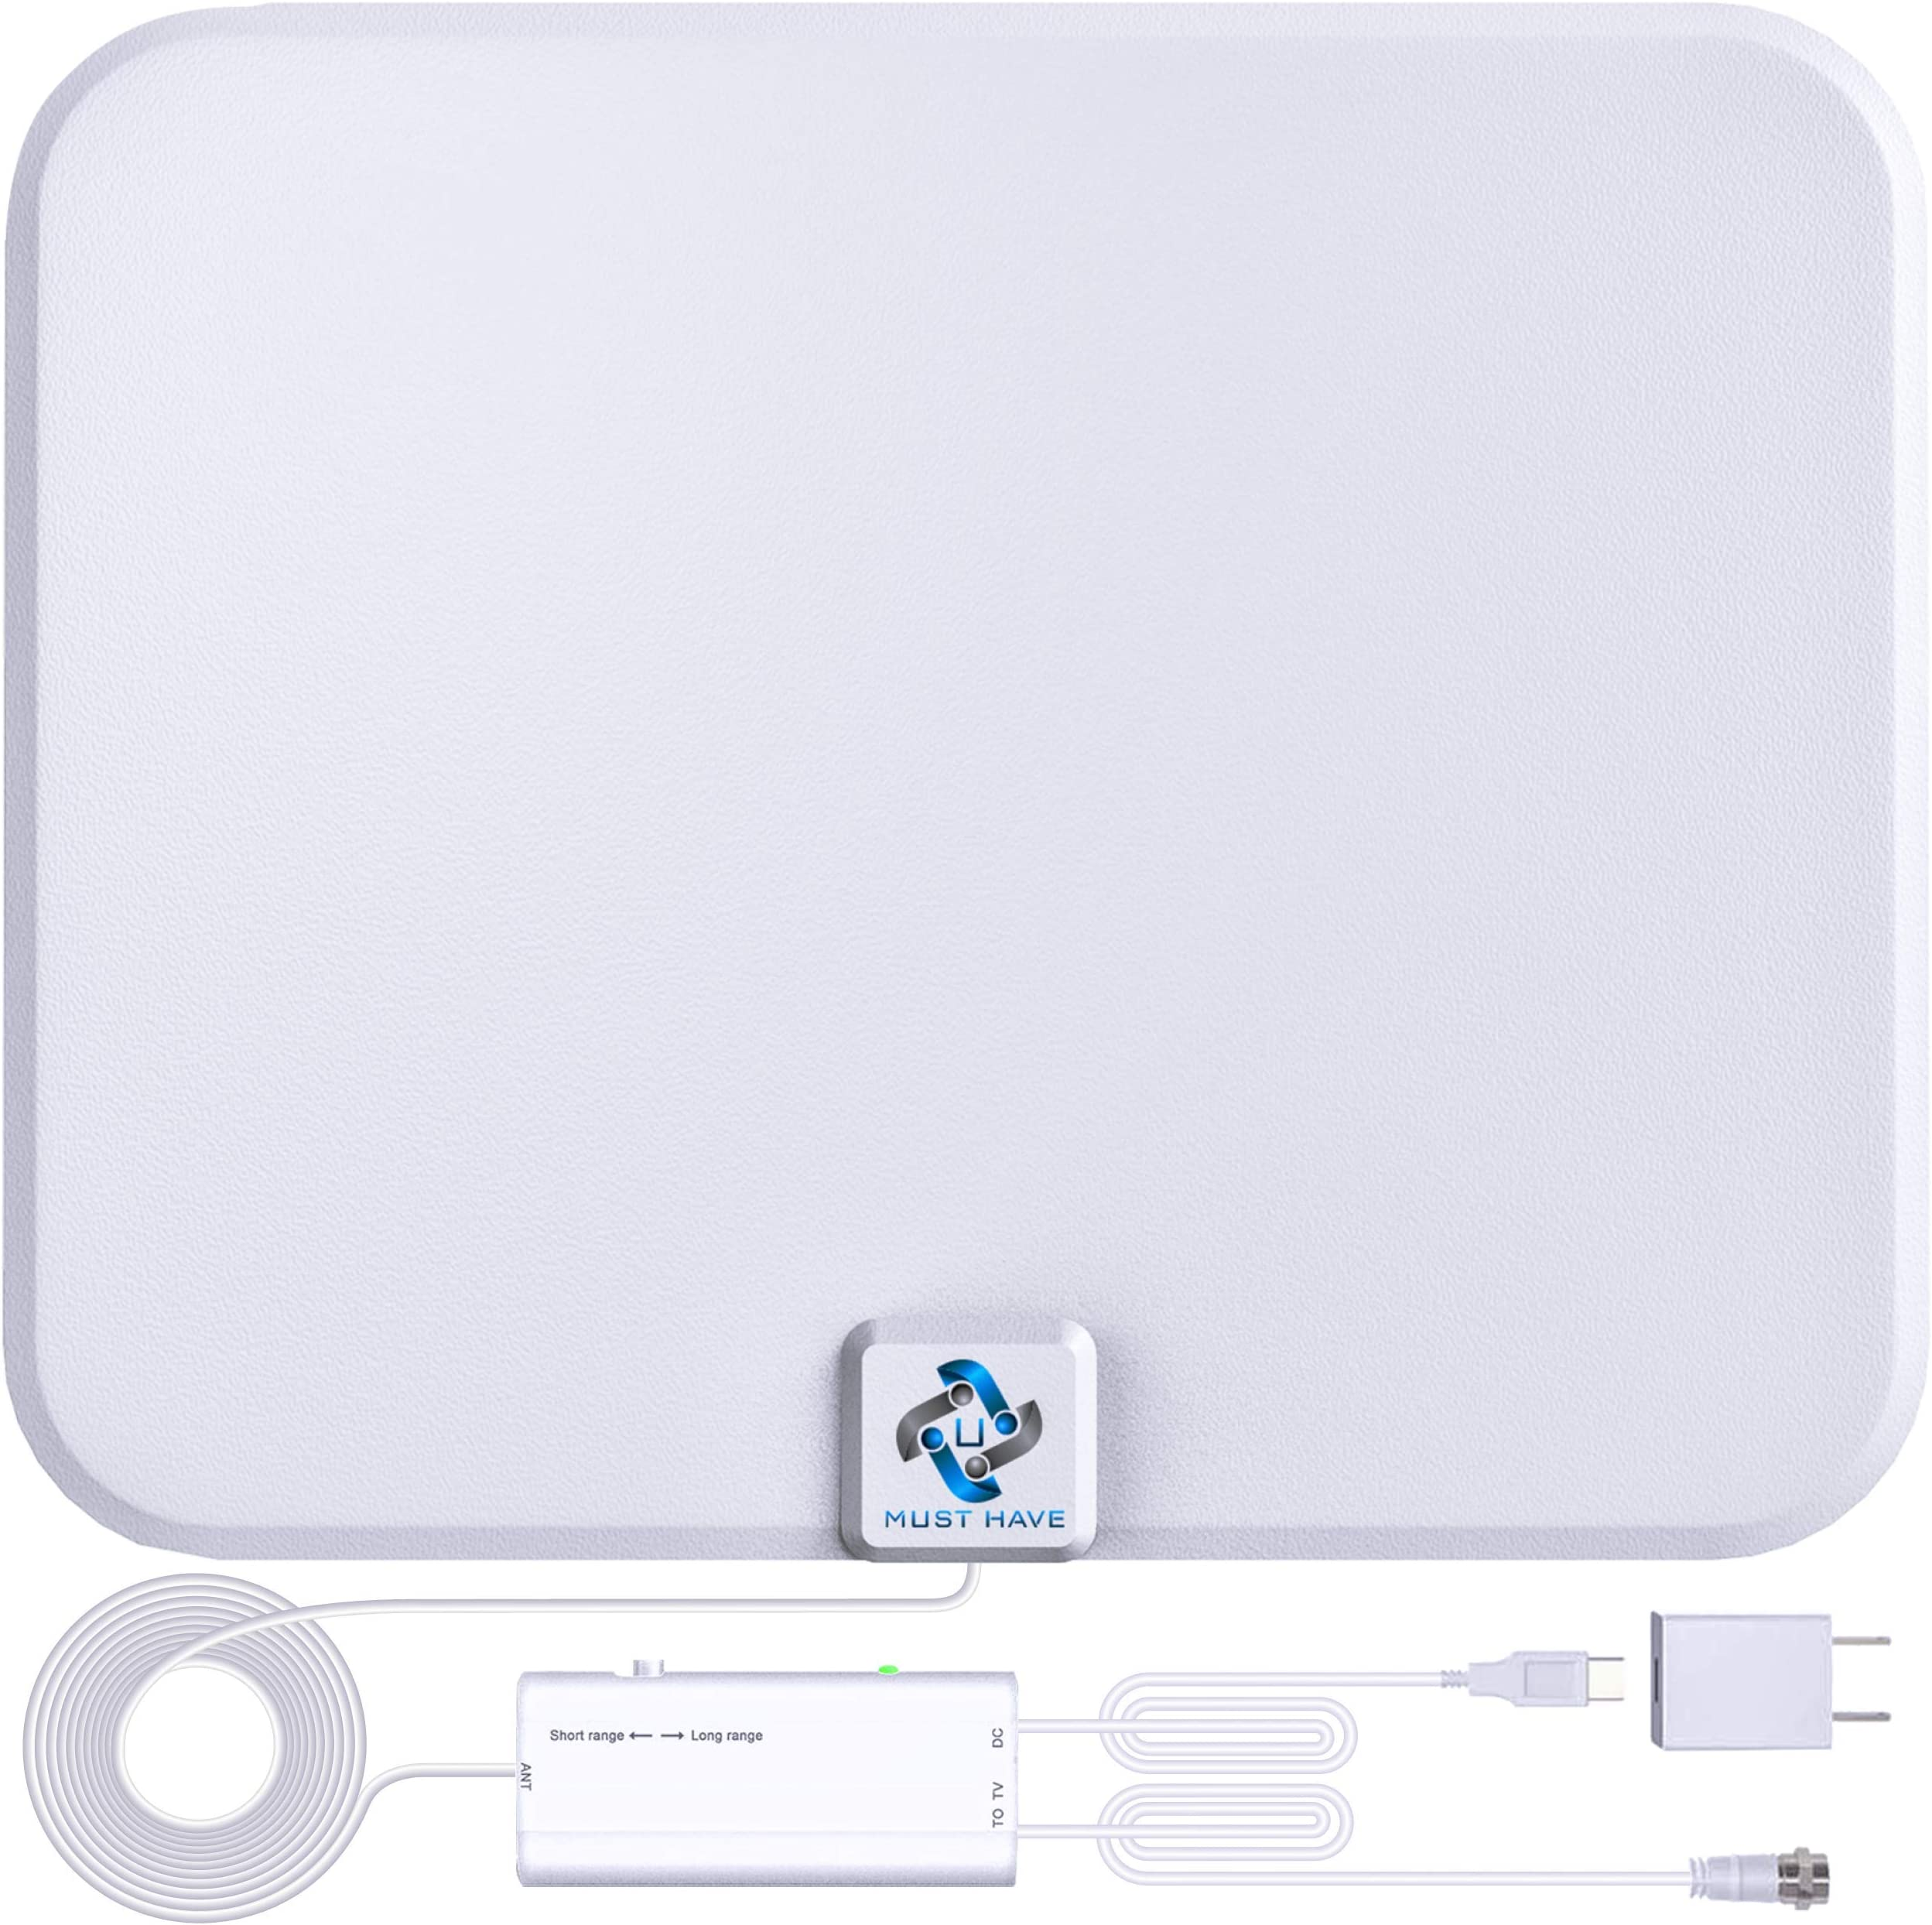 U MUST HAVE Amplified HD Digital TV Antenna Long 200+ Miles Range - Support 4K 1080p Fire tv Stick and All TV's - Indoor Smart Switch Amplifier Signal Booster - 18ft Coax HDTV Cable/AC Adapter (white)